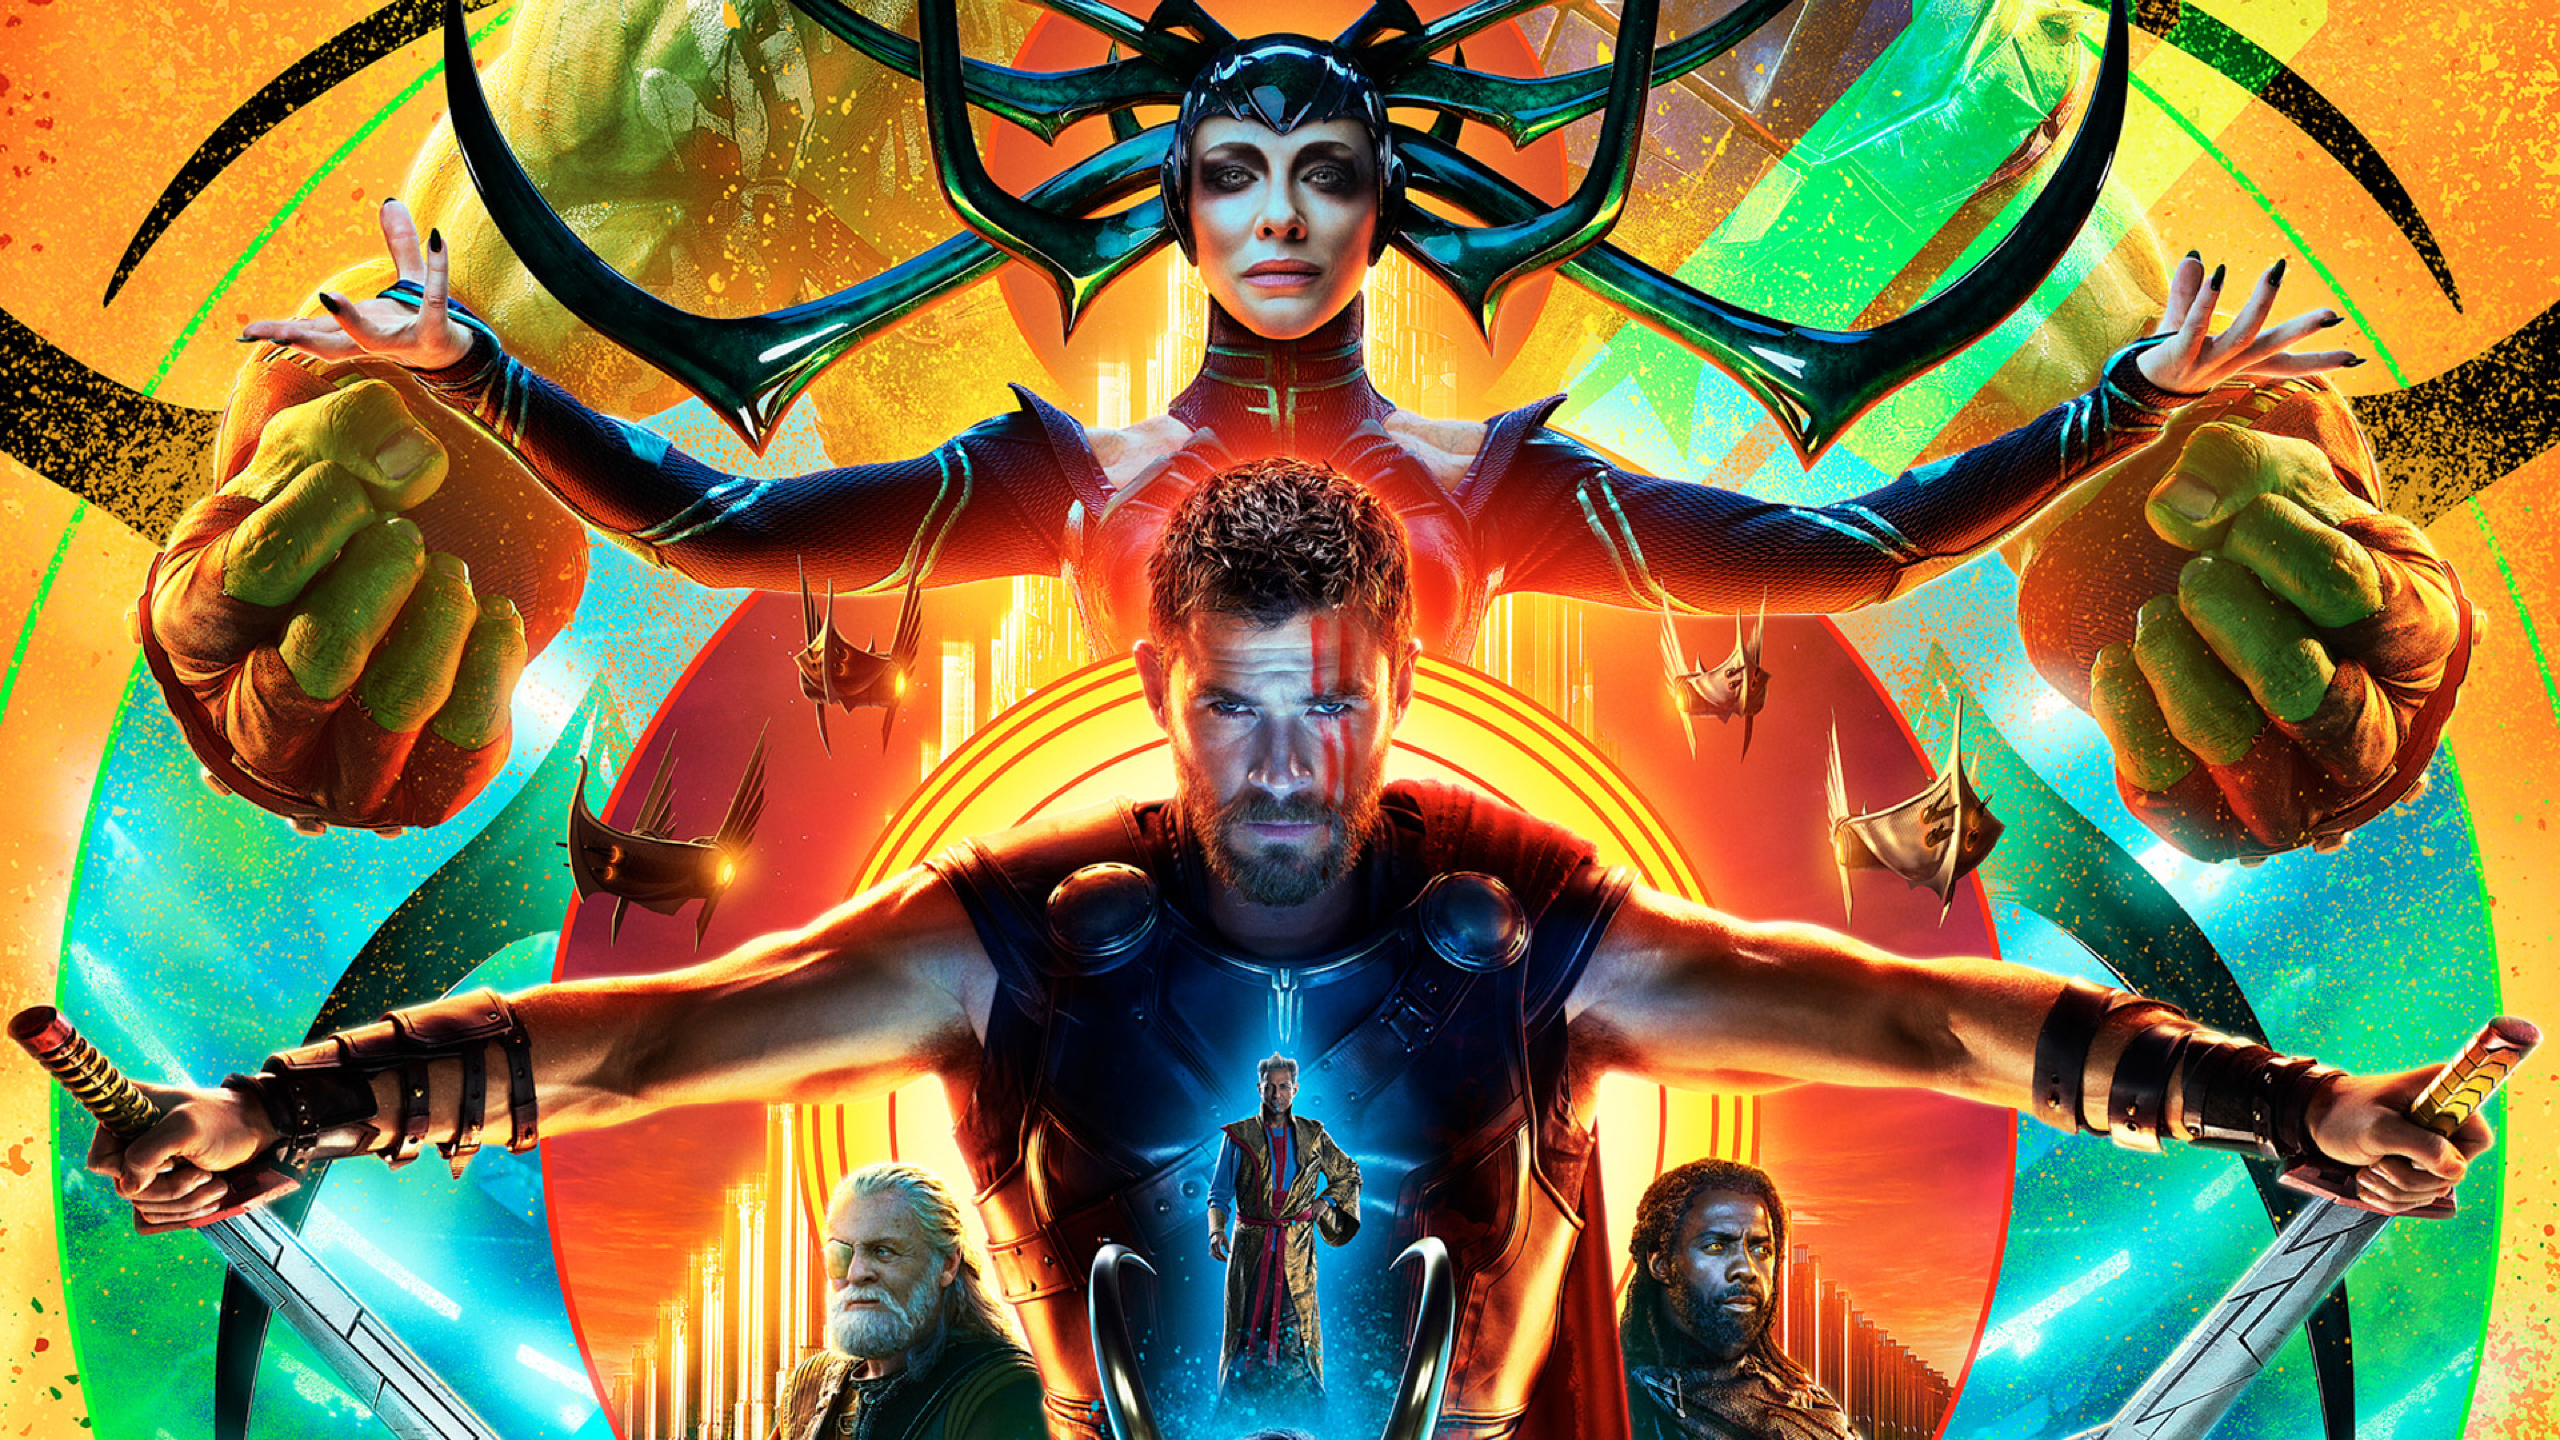 2560x1440 Hulk Hela Thor In Thor Ragnarok Poster 1440P Resolution 2560x1440